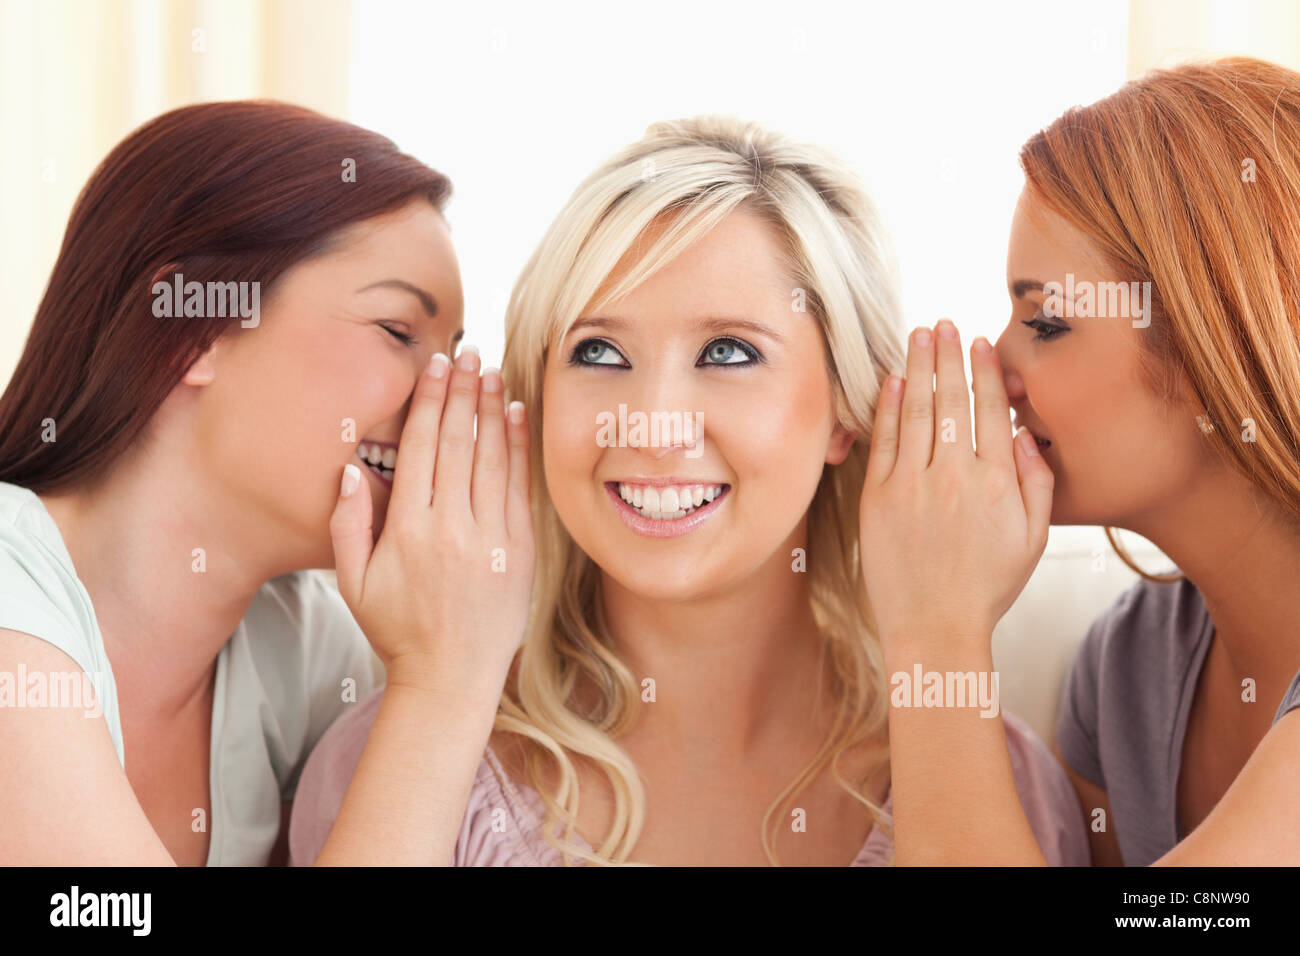 Young woman being told two secrets at a time - Stock Image